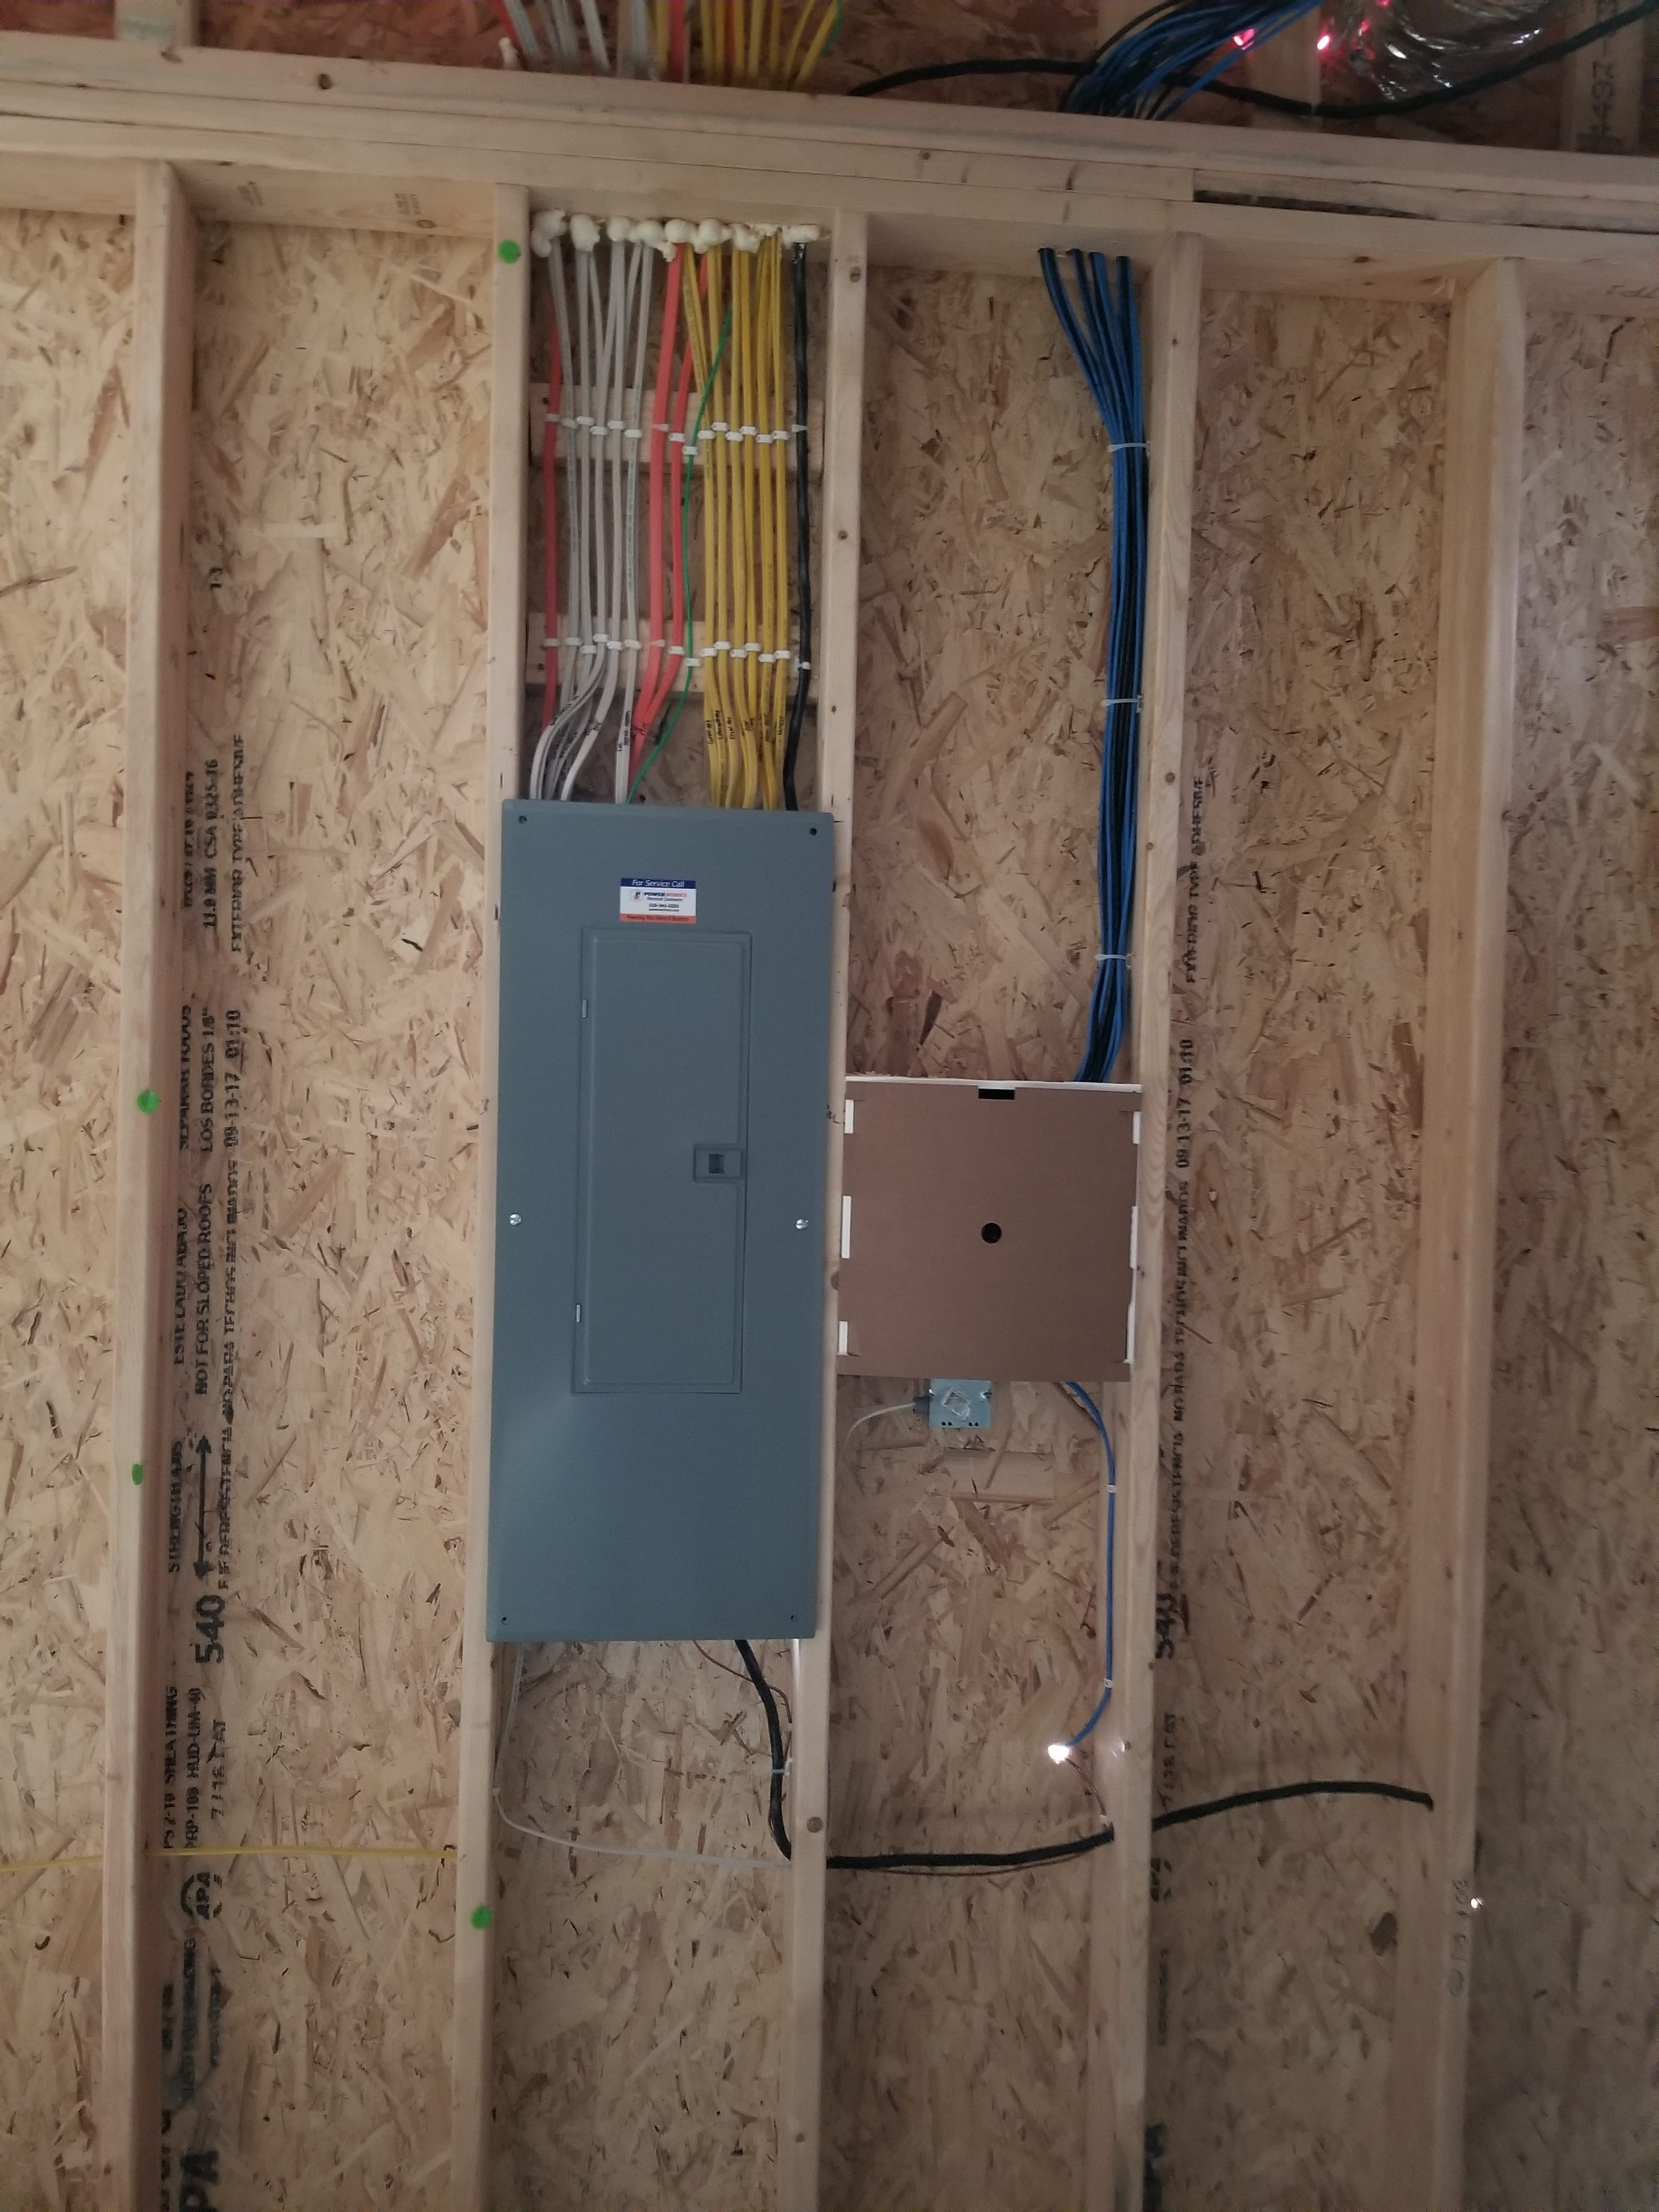 New Home Wiring Powerworks Inc Electrical Efficient Light Fixtures Many Led Recess Can Lights Which Use Very Little Energy And Ensure That The Owners Will Have A Nice To Move Into